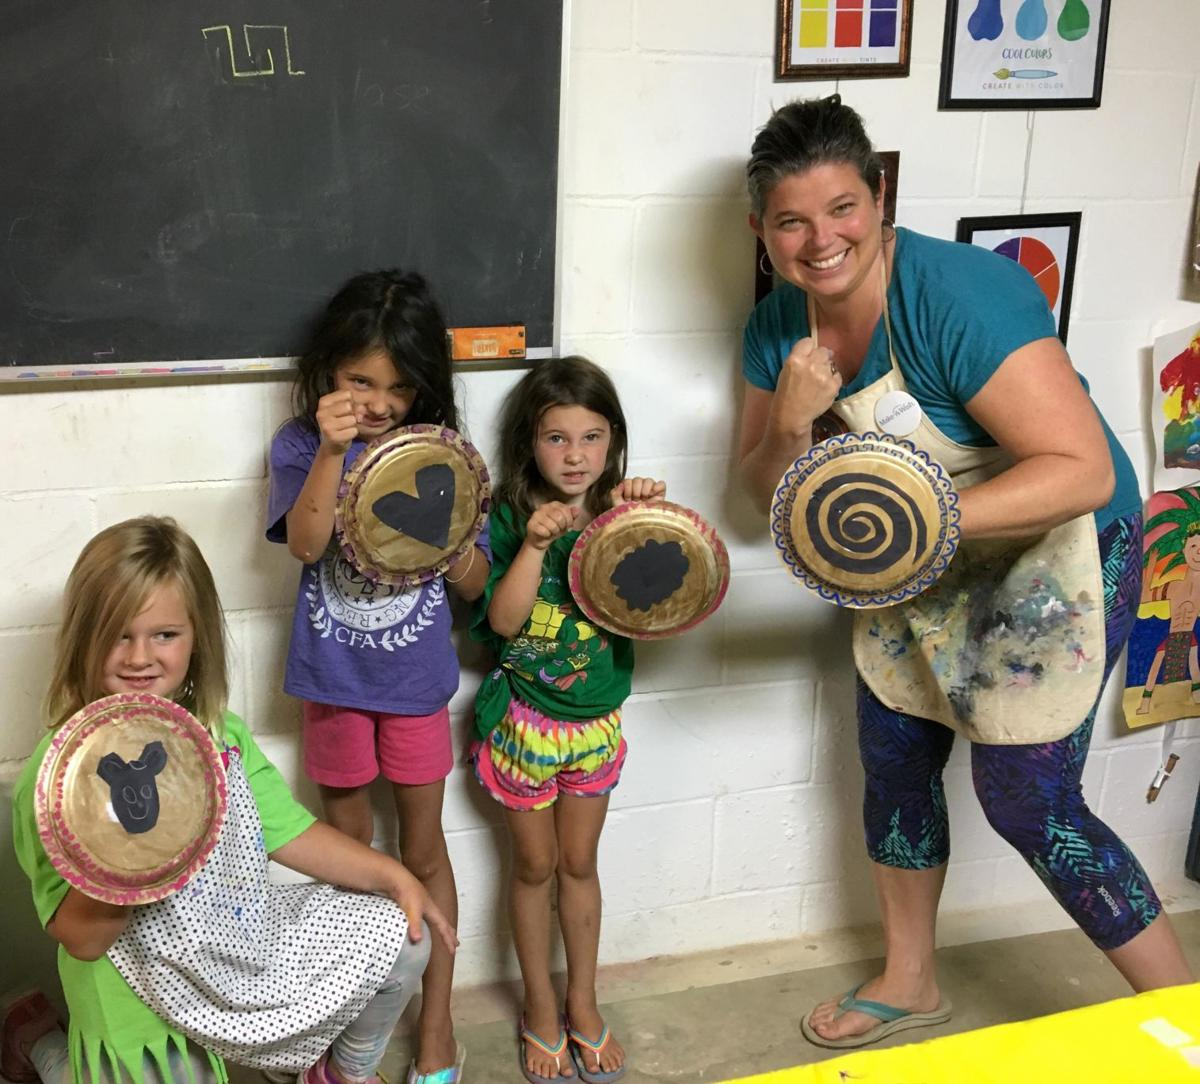 Art group with shields